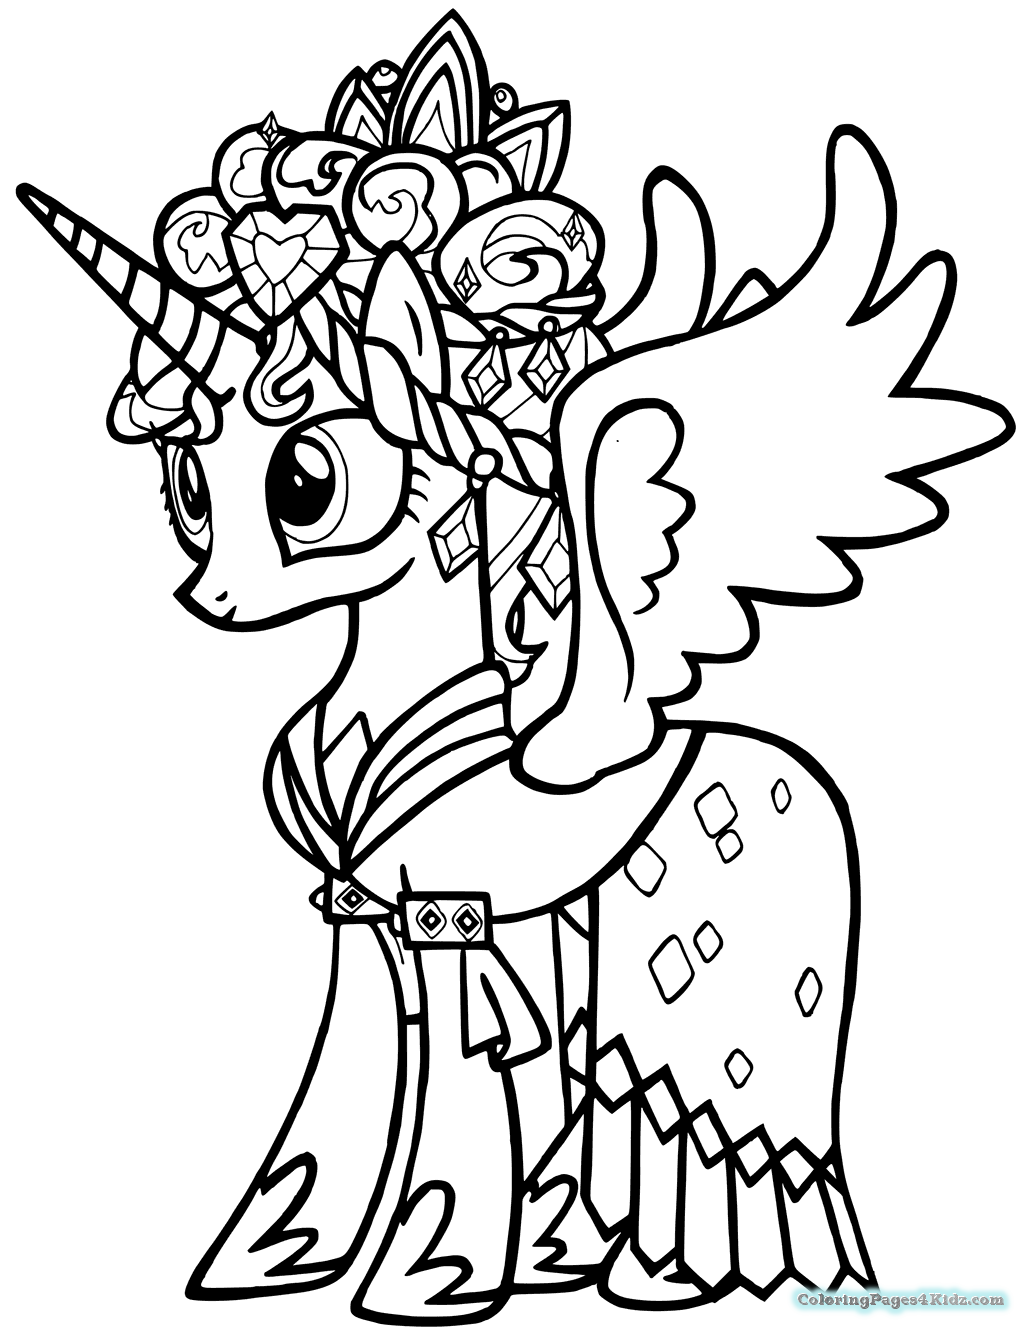 my little pony coloring pages princess cadence princess cadence my little pony coloring page coloring home little pony coloring my princess pages cadence